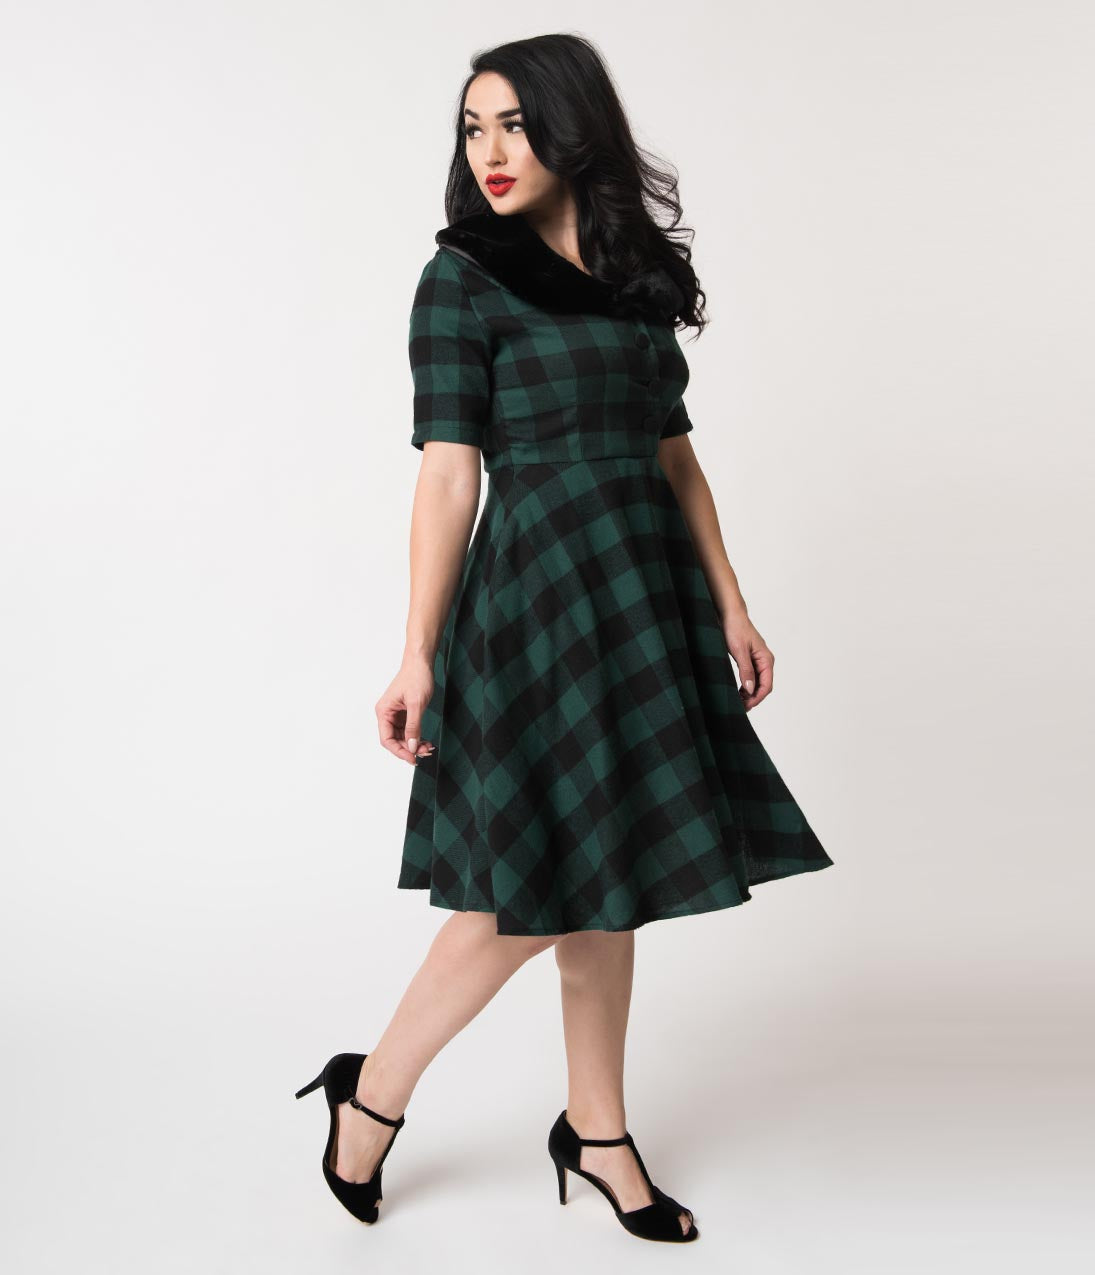 1950s Swing Dresses | 50s Swing Dress 1950S Style Green  Black Buffalo Plaid Swing Dress  Fur Collar $78.00 AT vintagedancer.com